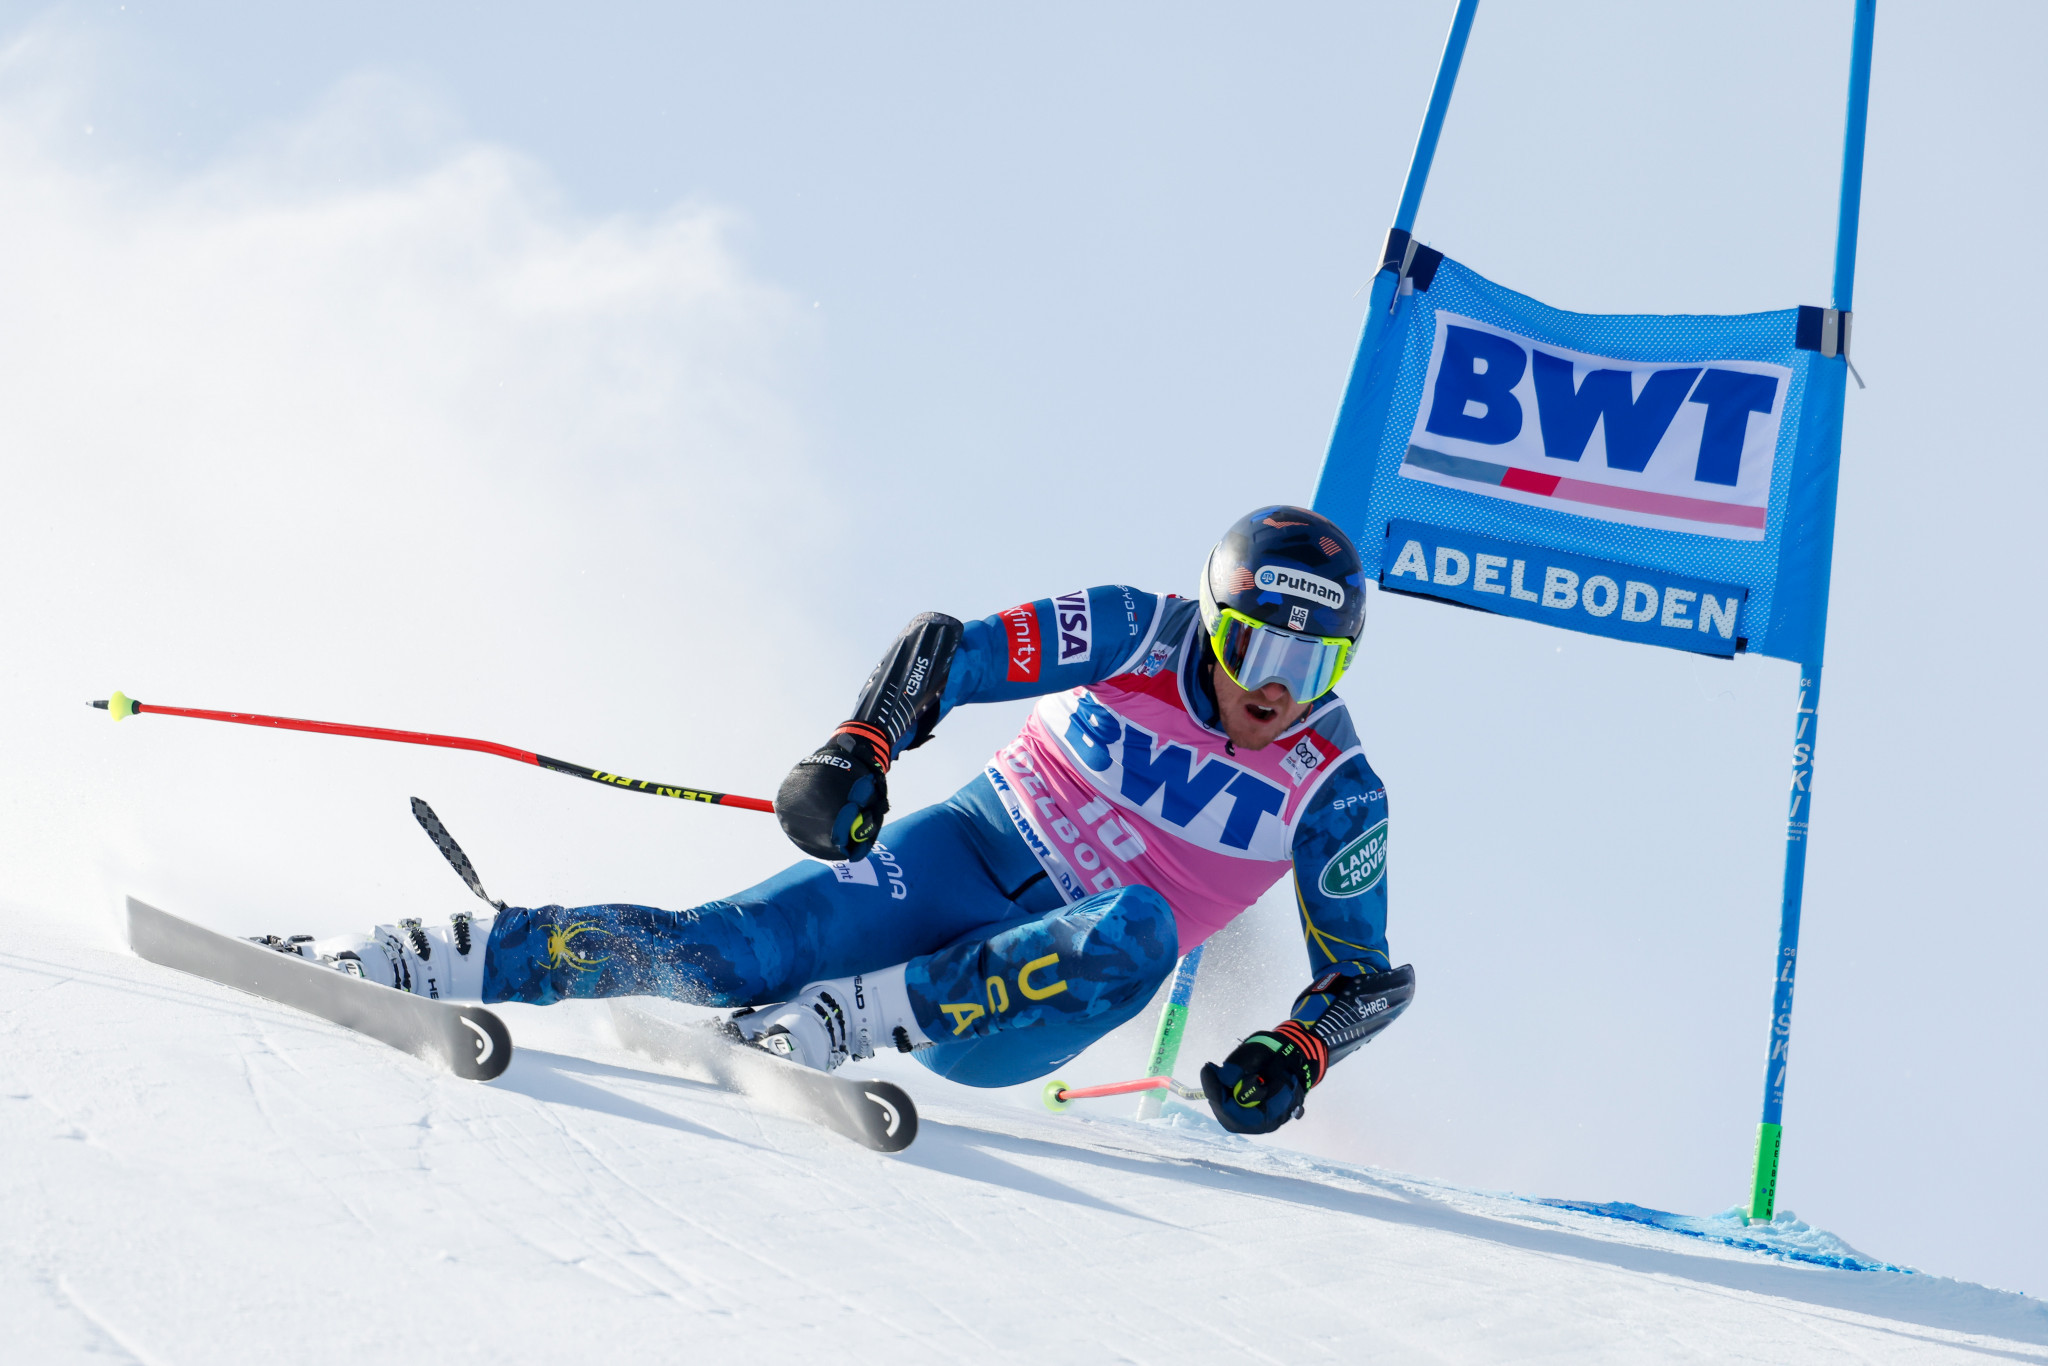 Ligety begins retirement after final race at Alpine Ski World Championships denied due to injury